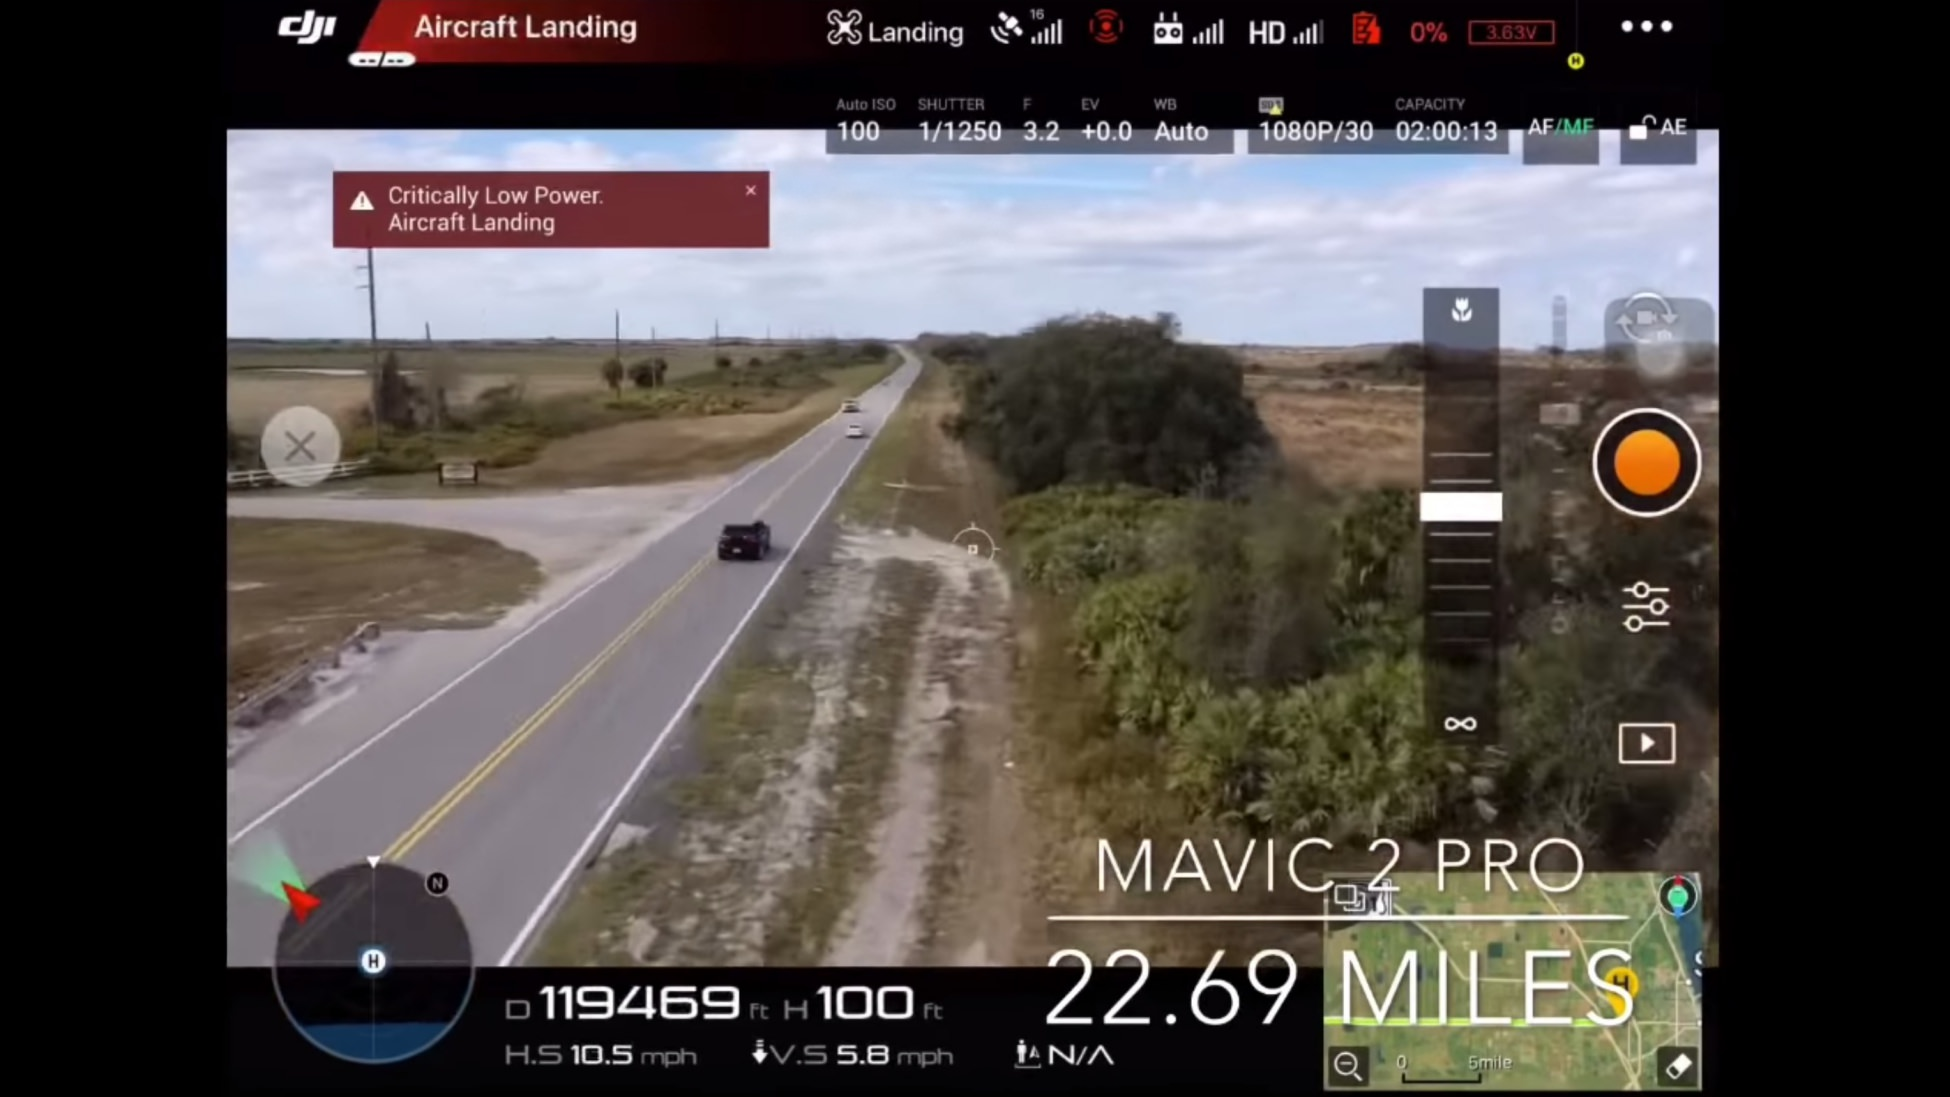 Man flies Mavic 2 Pro more than 22 miles over a busy road